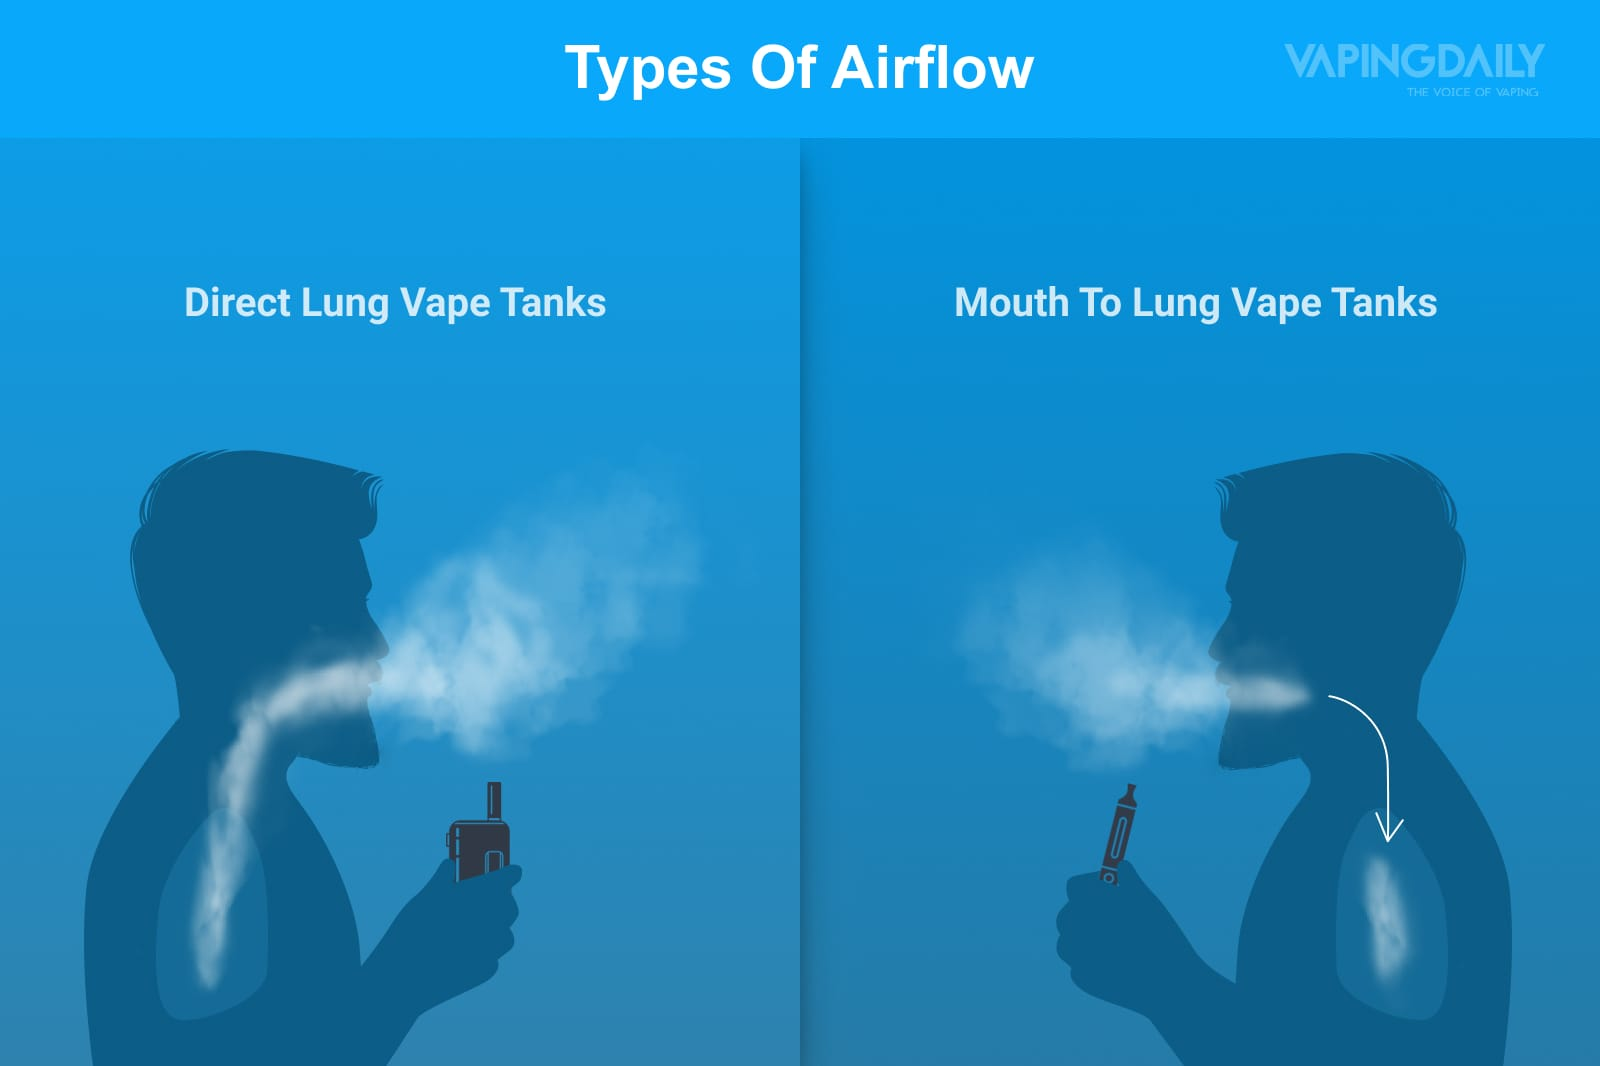 types-of-airflow image